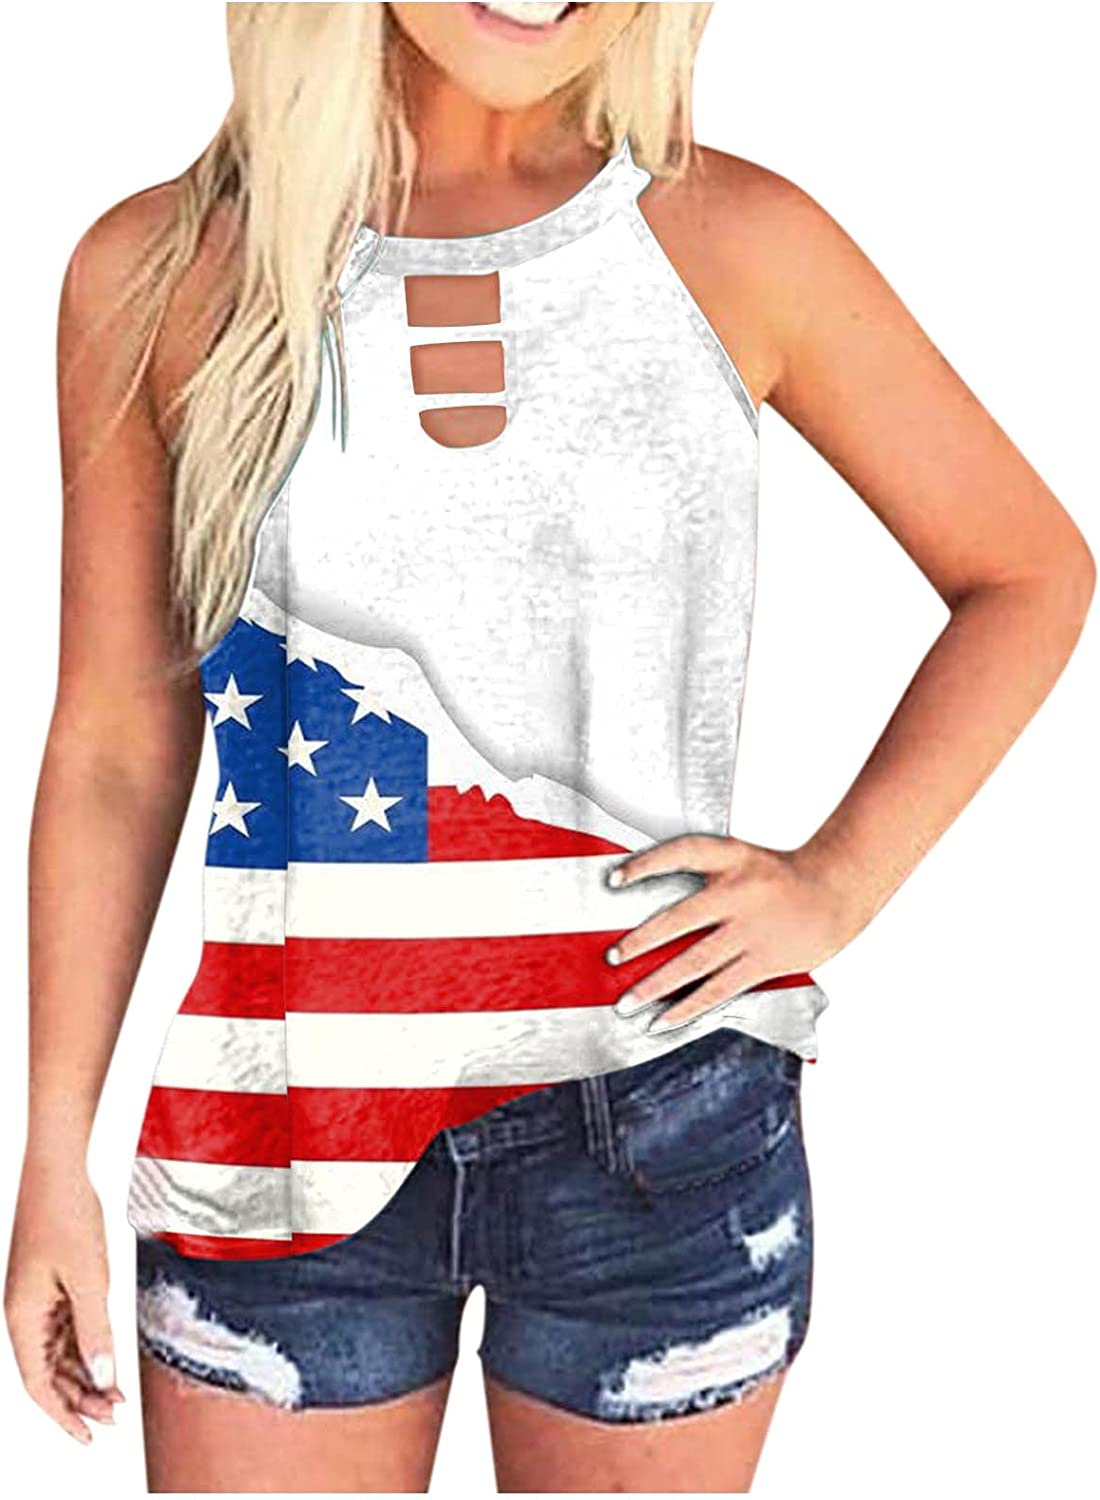 Sleeveless Tops for Women Plus Size,Womens High Neck Tank Tops Sleeveless Loose Tie Dye Tunic Casual Plus Size Basic Tees Tops